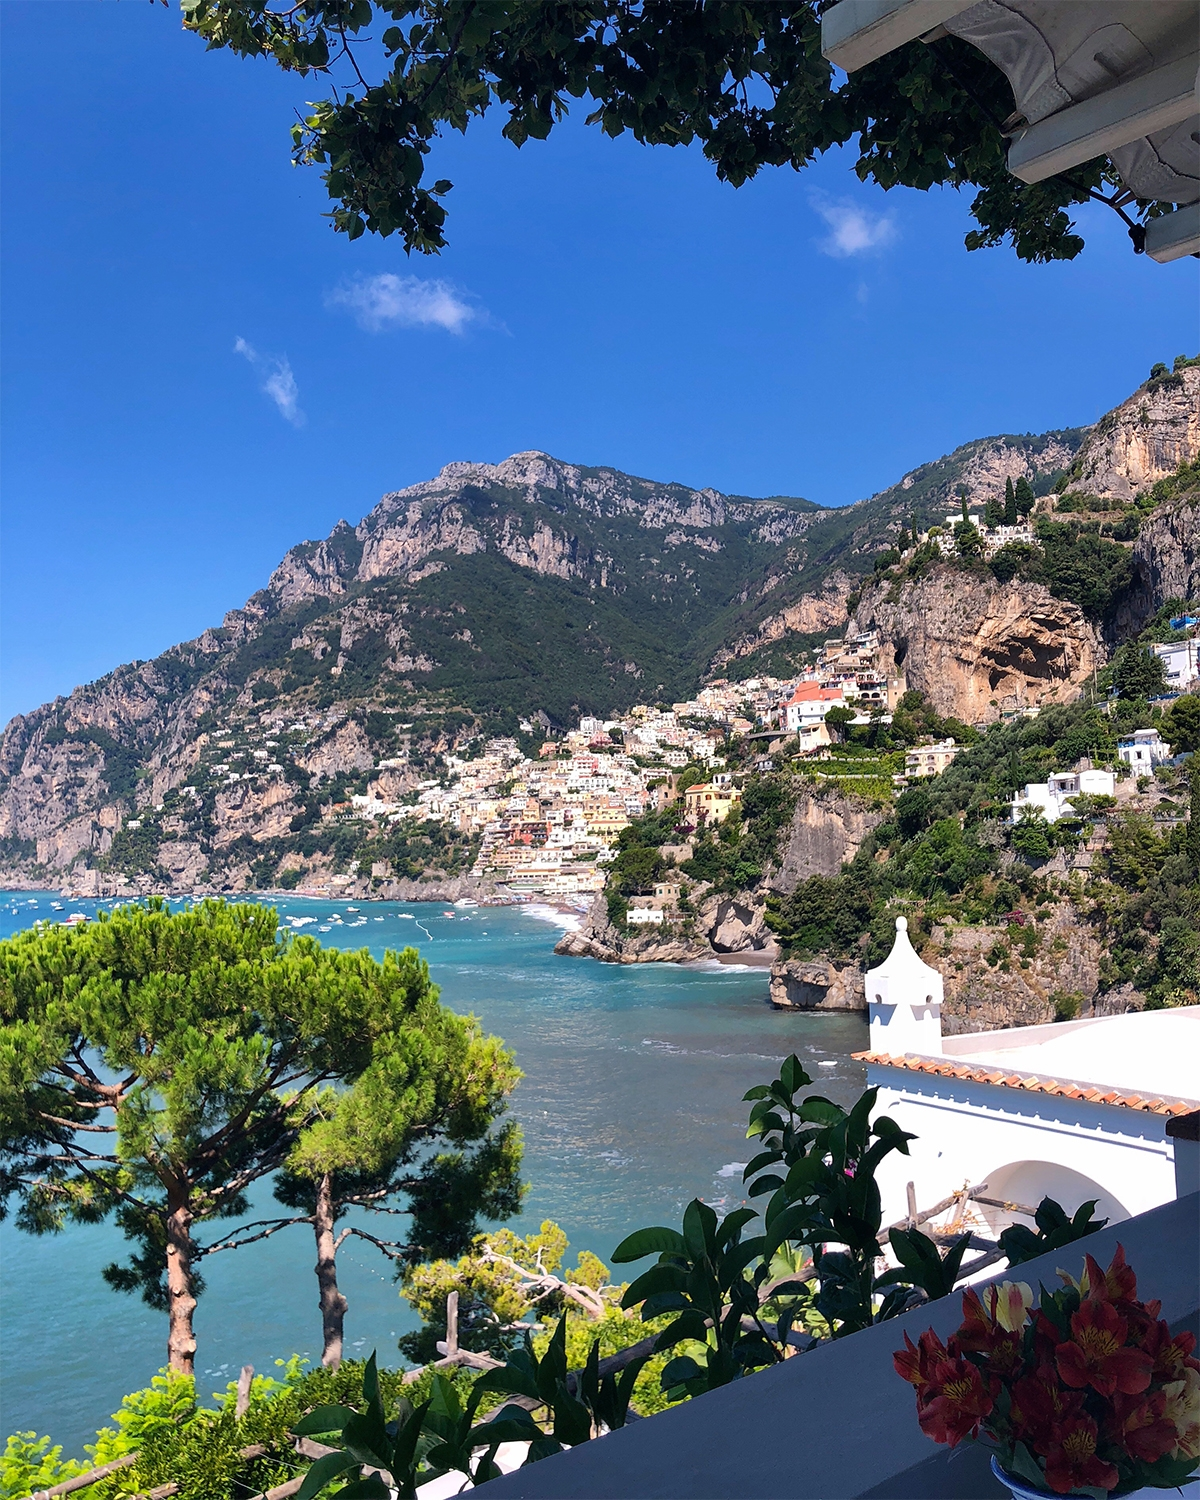 The view from Villa Tre Ville boasts turquoise water and colourful houses built into the mountain